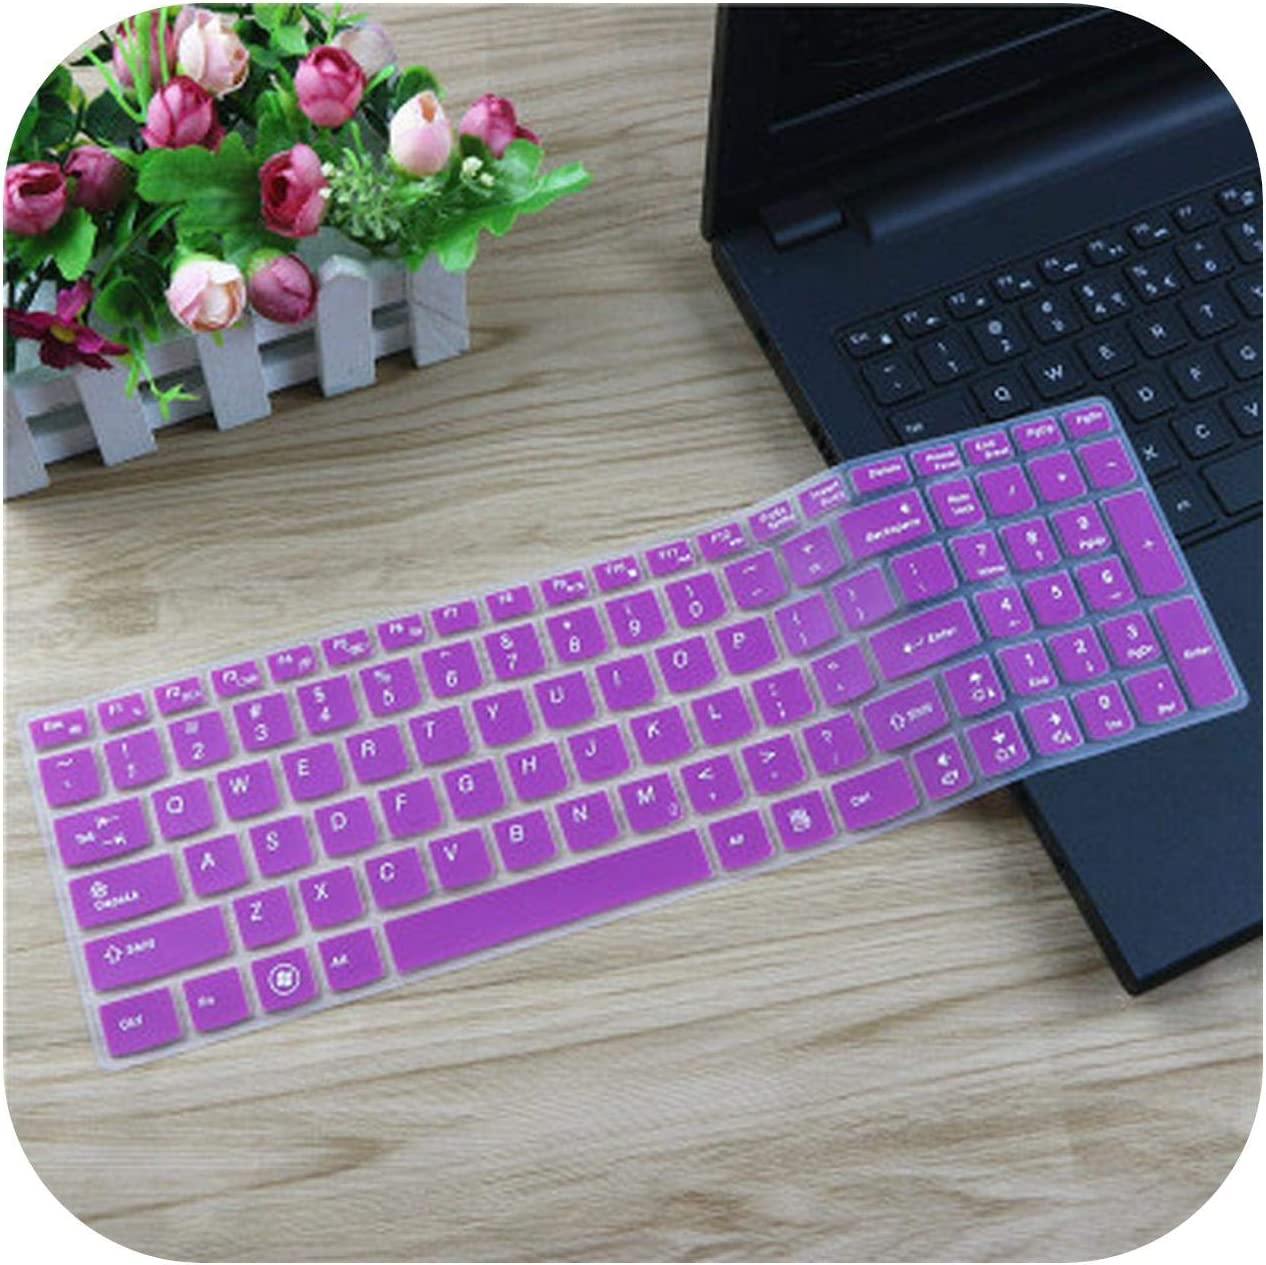 Silicone Keyboard Cover Protector Skin for Lenovo IdeaPad Y580 Y570 Y570D Y500 Y510 Y510P Z580 Z560 Z565 Z570 Z575 Laptop-Gradualpink